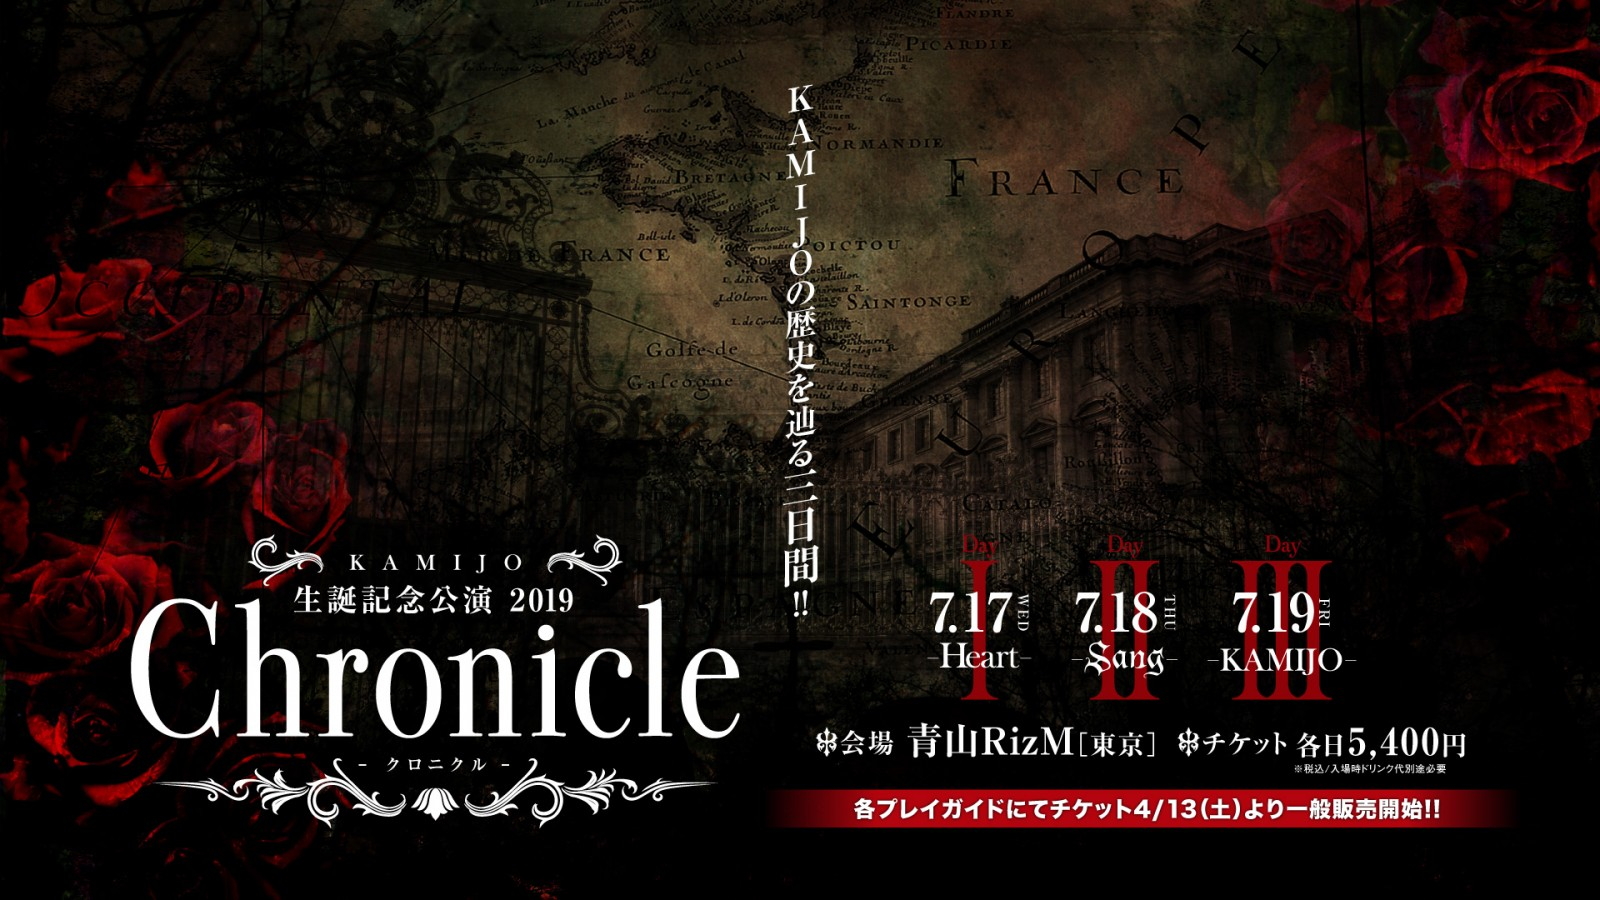 KAMI_1903_Chronicle_Banner_02-1600x900